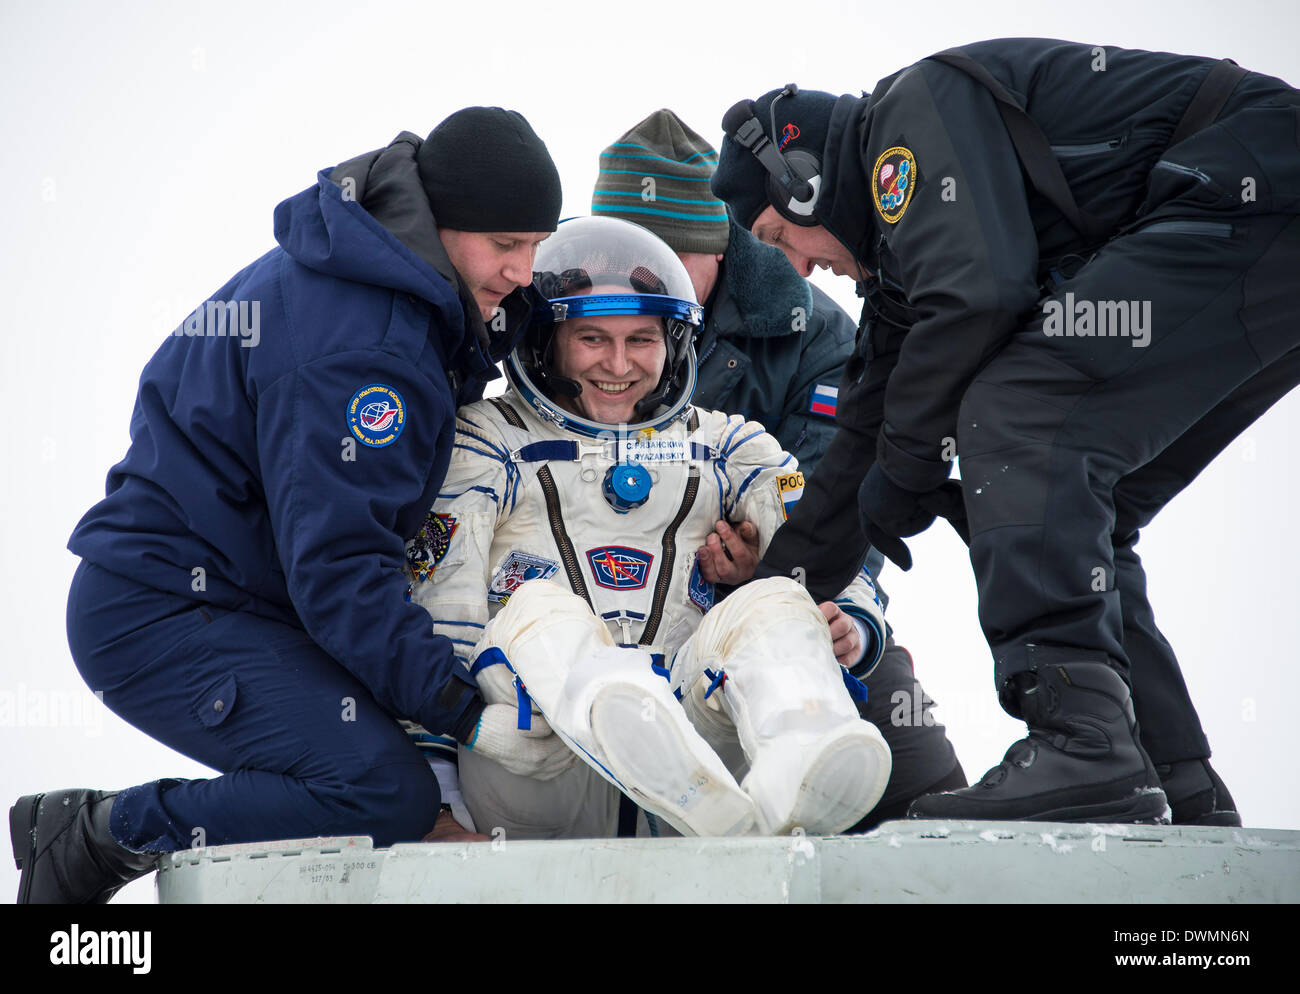 International Space State Expedition 38 cosmonaut Sergey Ryazanskiy of the Russian Federal Space Agency, is lifted out of the Soyuz Capsule after landing in a Soyuz TMA-10M spacecraft March 11, 2014 near the town of Zhezkazgan, Kazakhstan. Hopkins, Kotov and Ryazanskiy returned to Earth after five and a half months onboard the International Space Station where they served as members of the Expedition 37 and 38 crews. - Stock Image